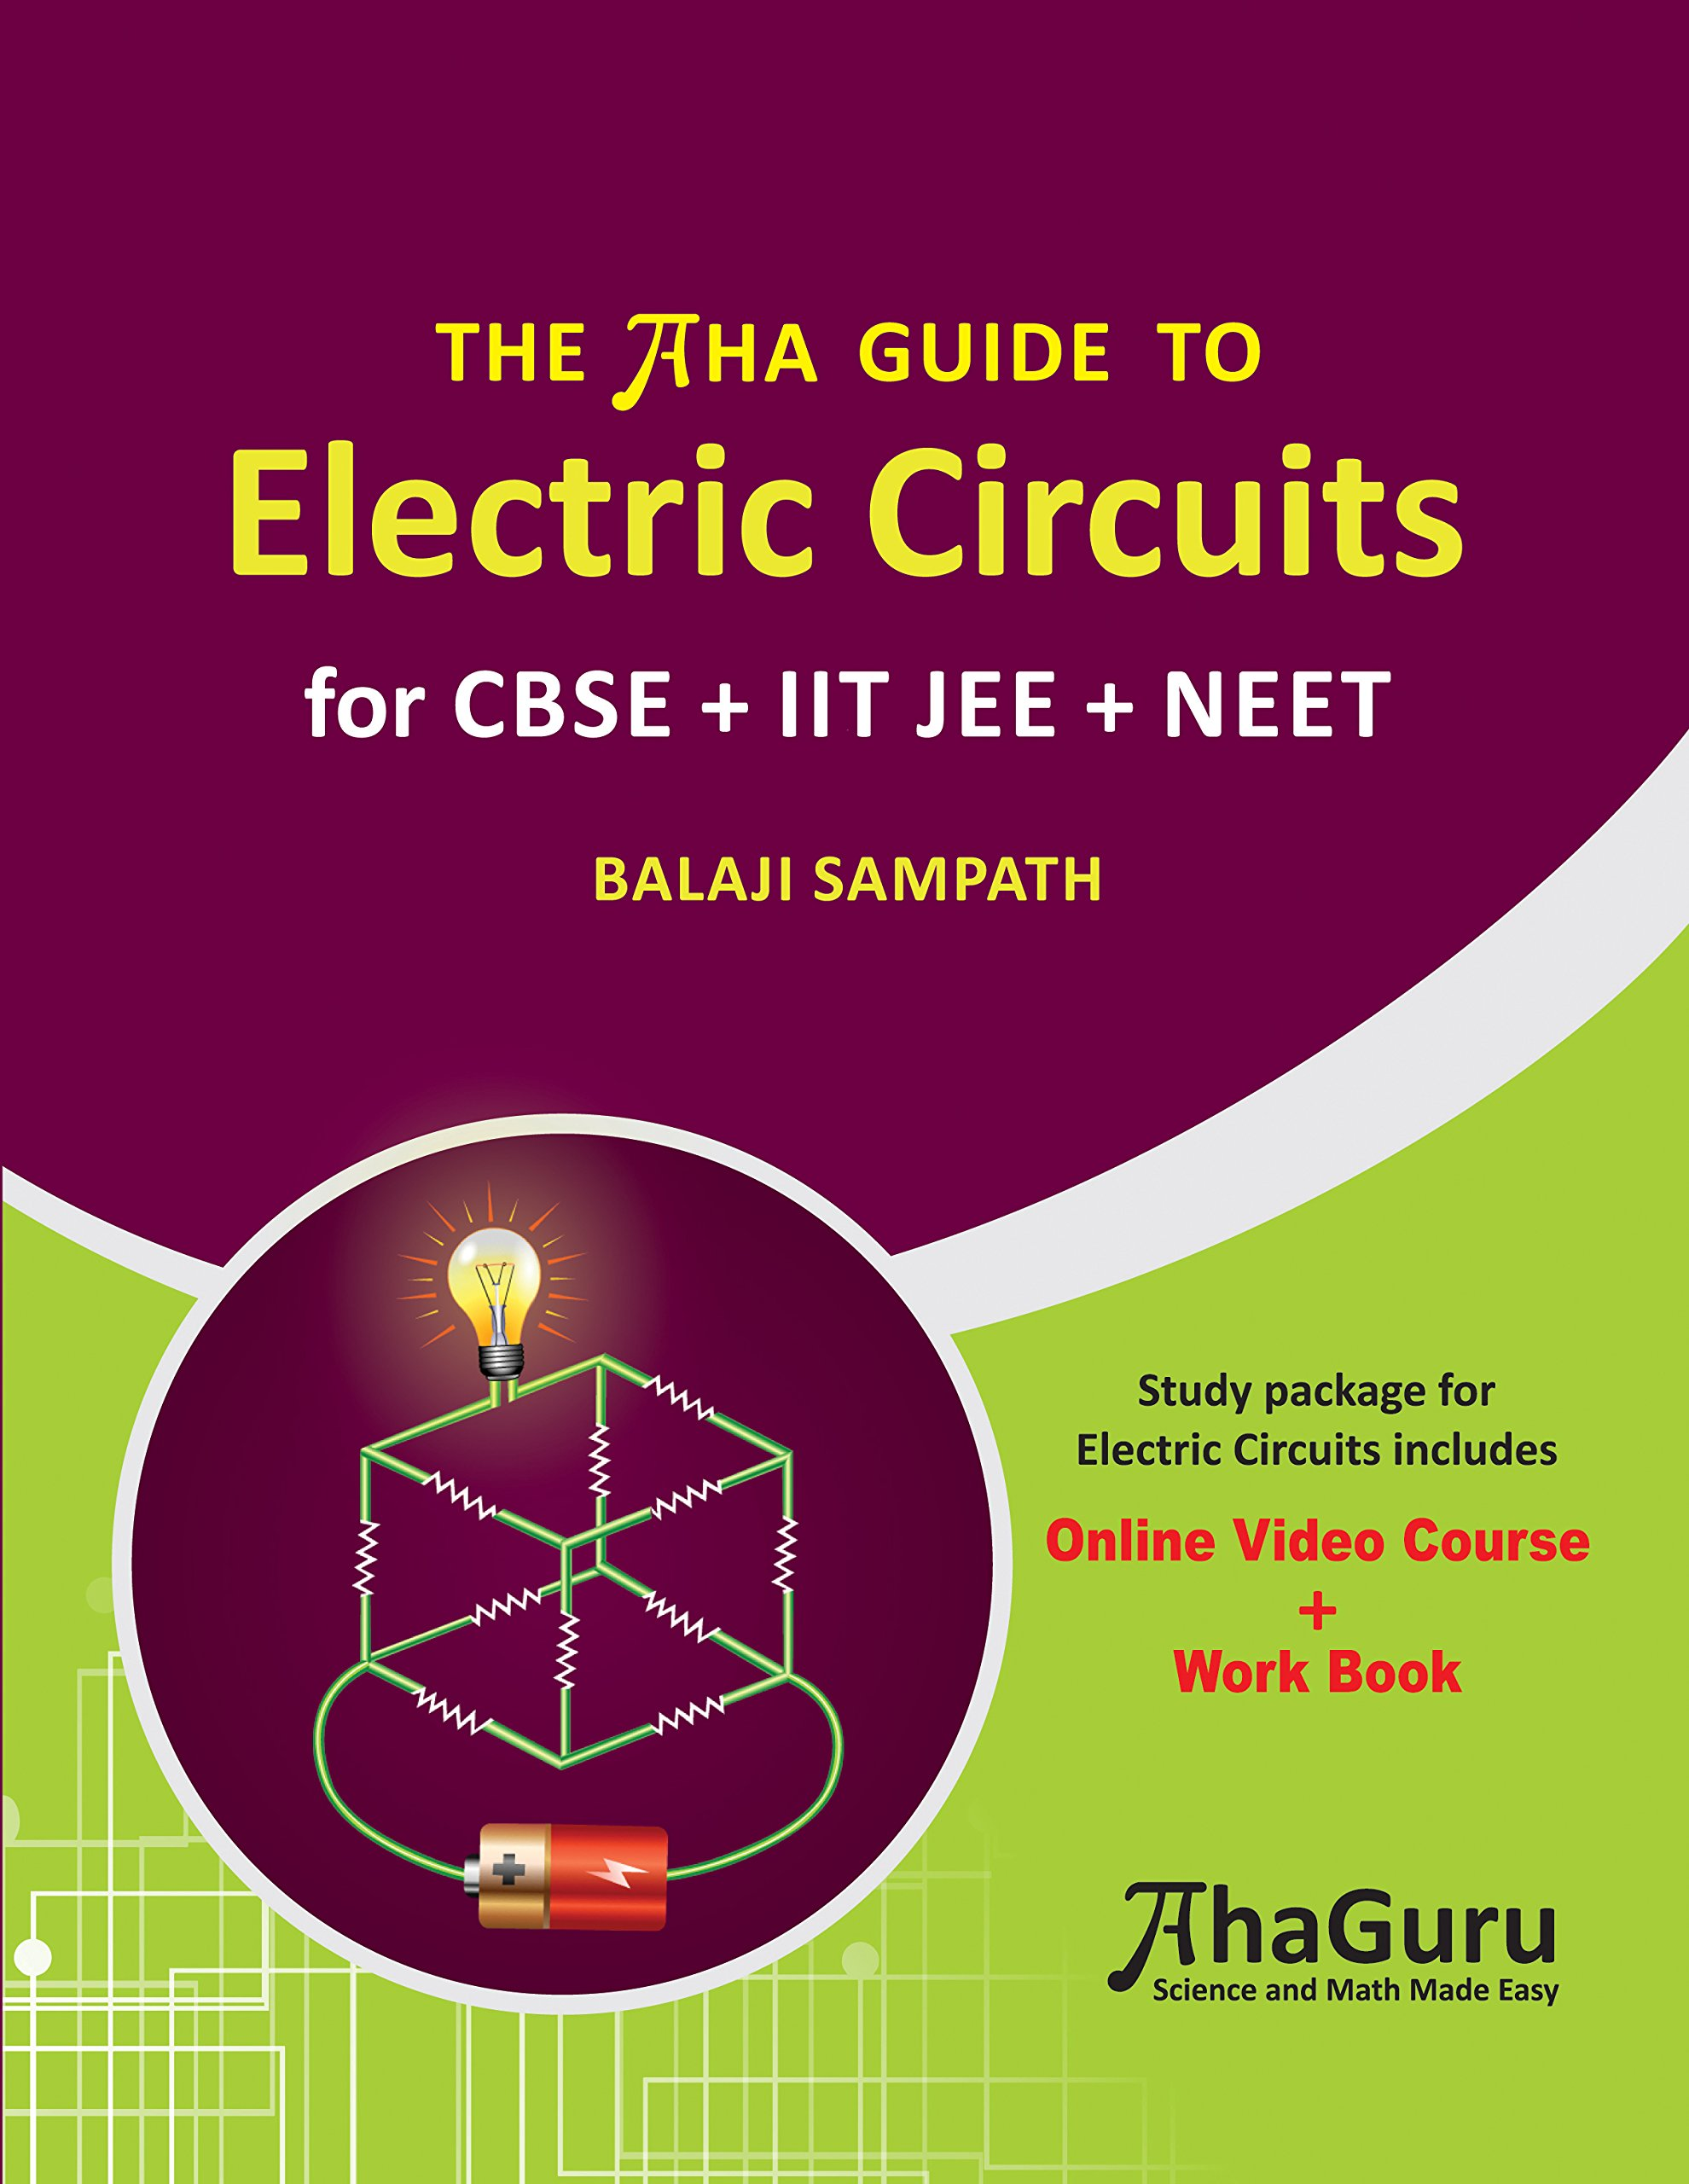 Buy The Aha Guide To Electric Circuits For Cbse Iit Jee Neet Design Electronic Circuit Online Video Course Work Book At Low Prices In India